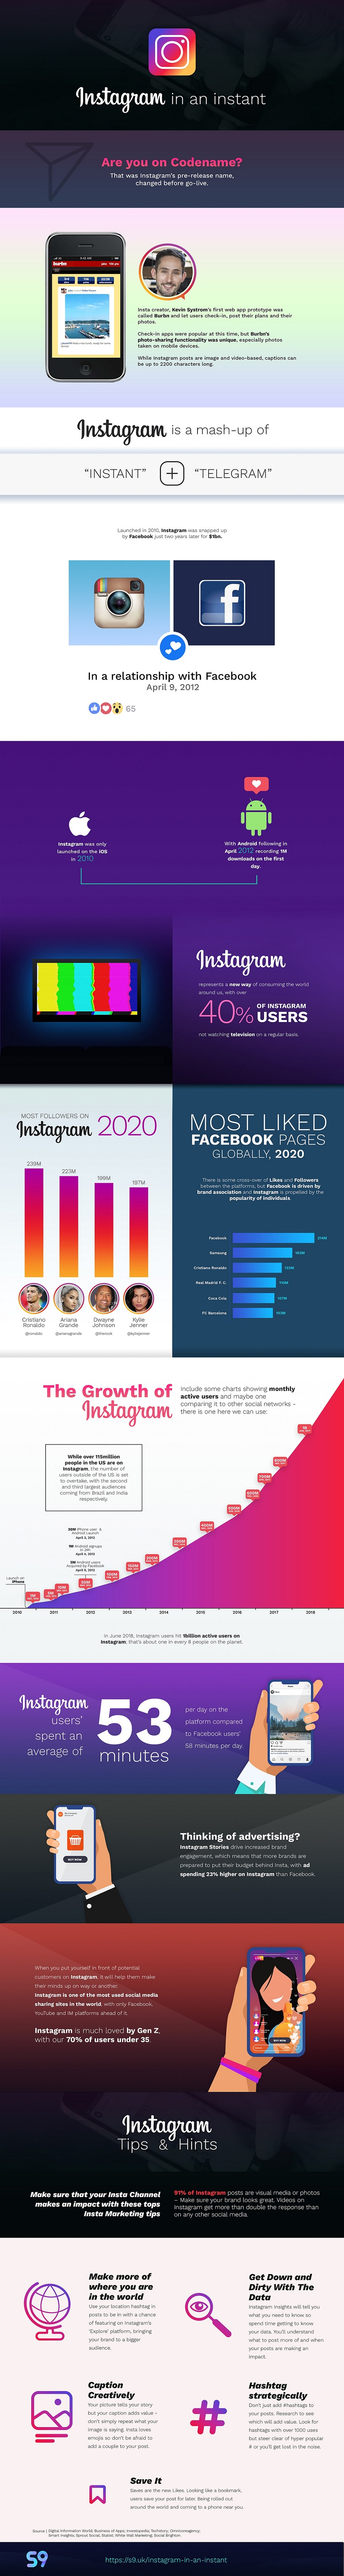 instagram in an instant infographic